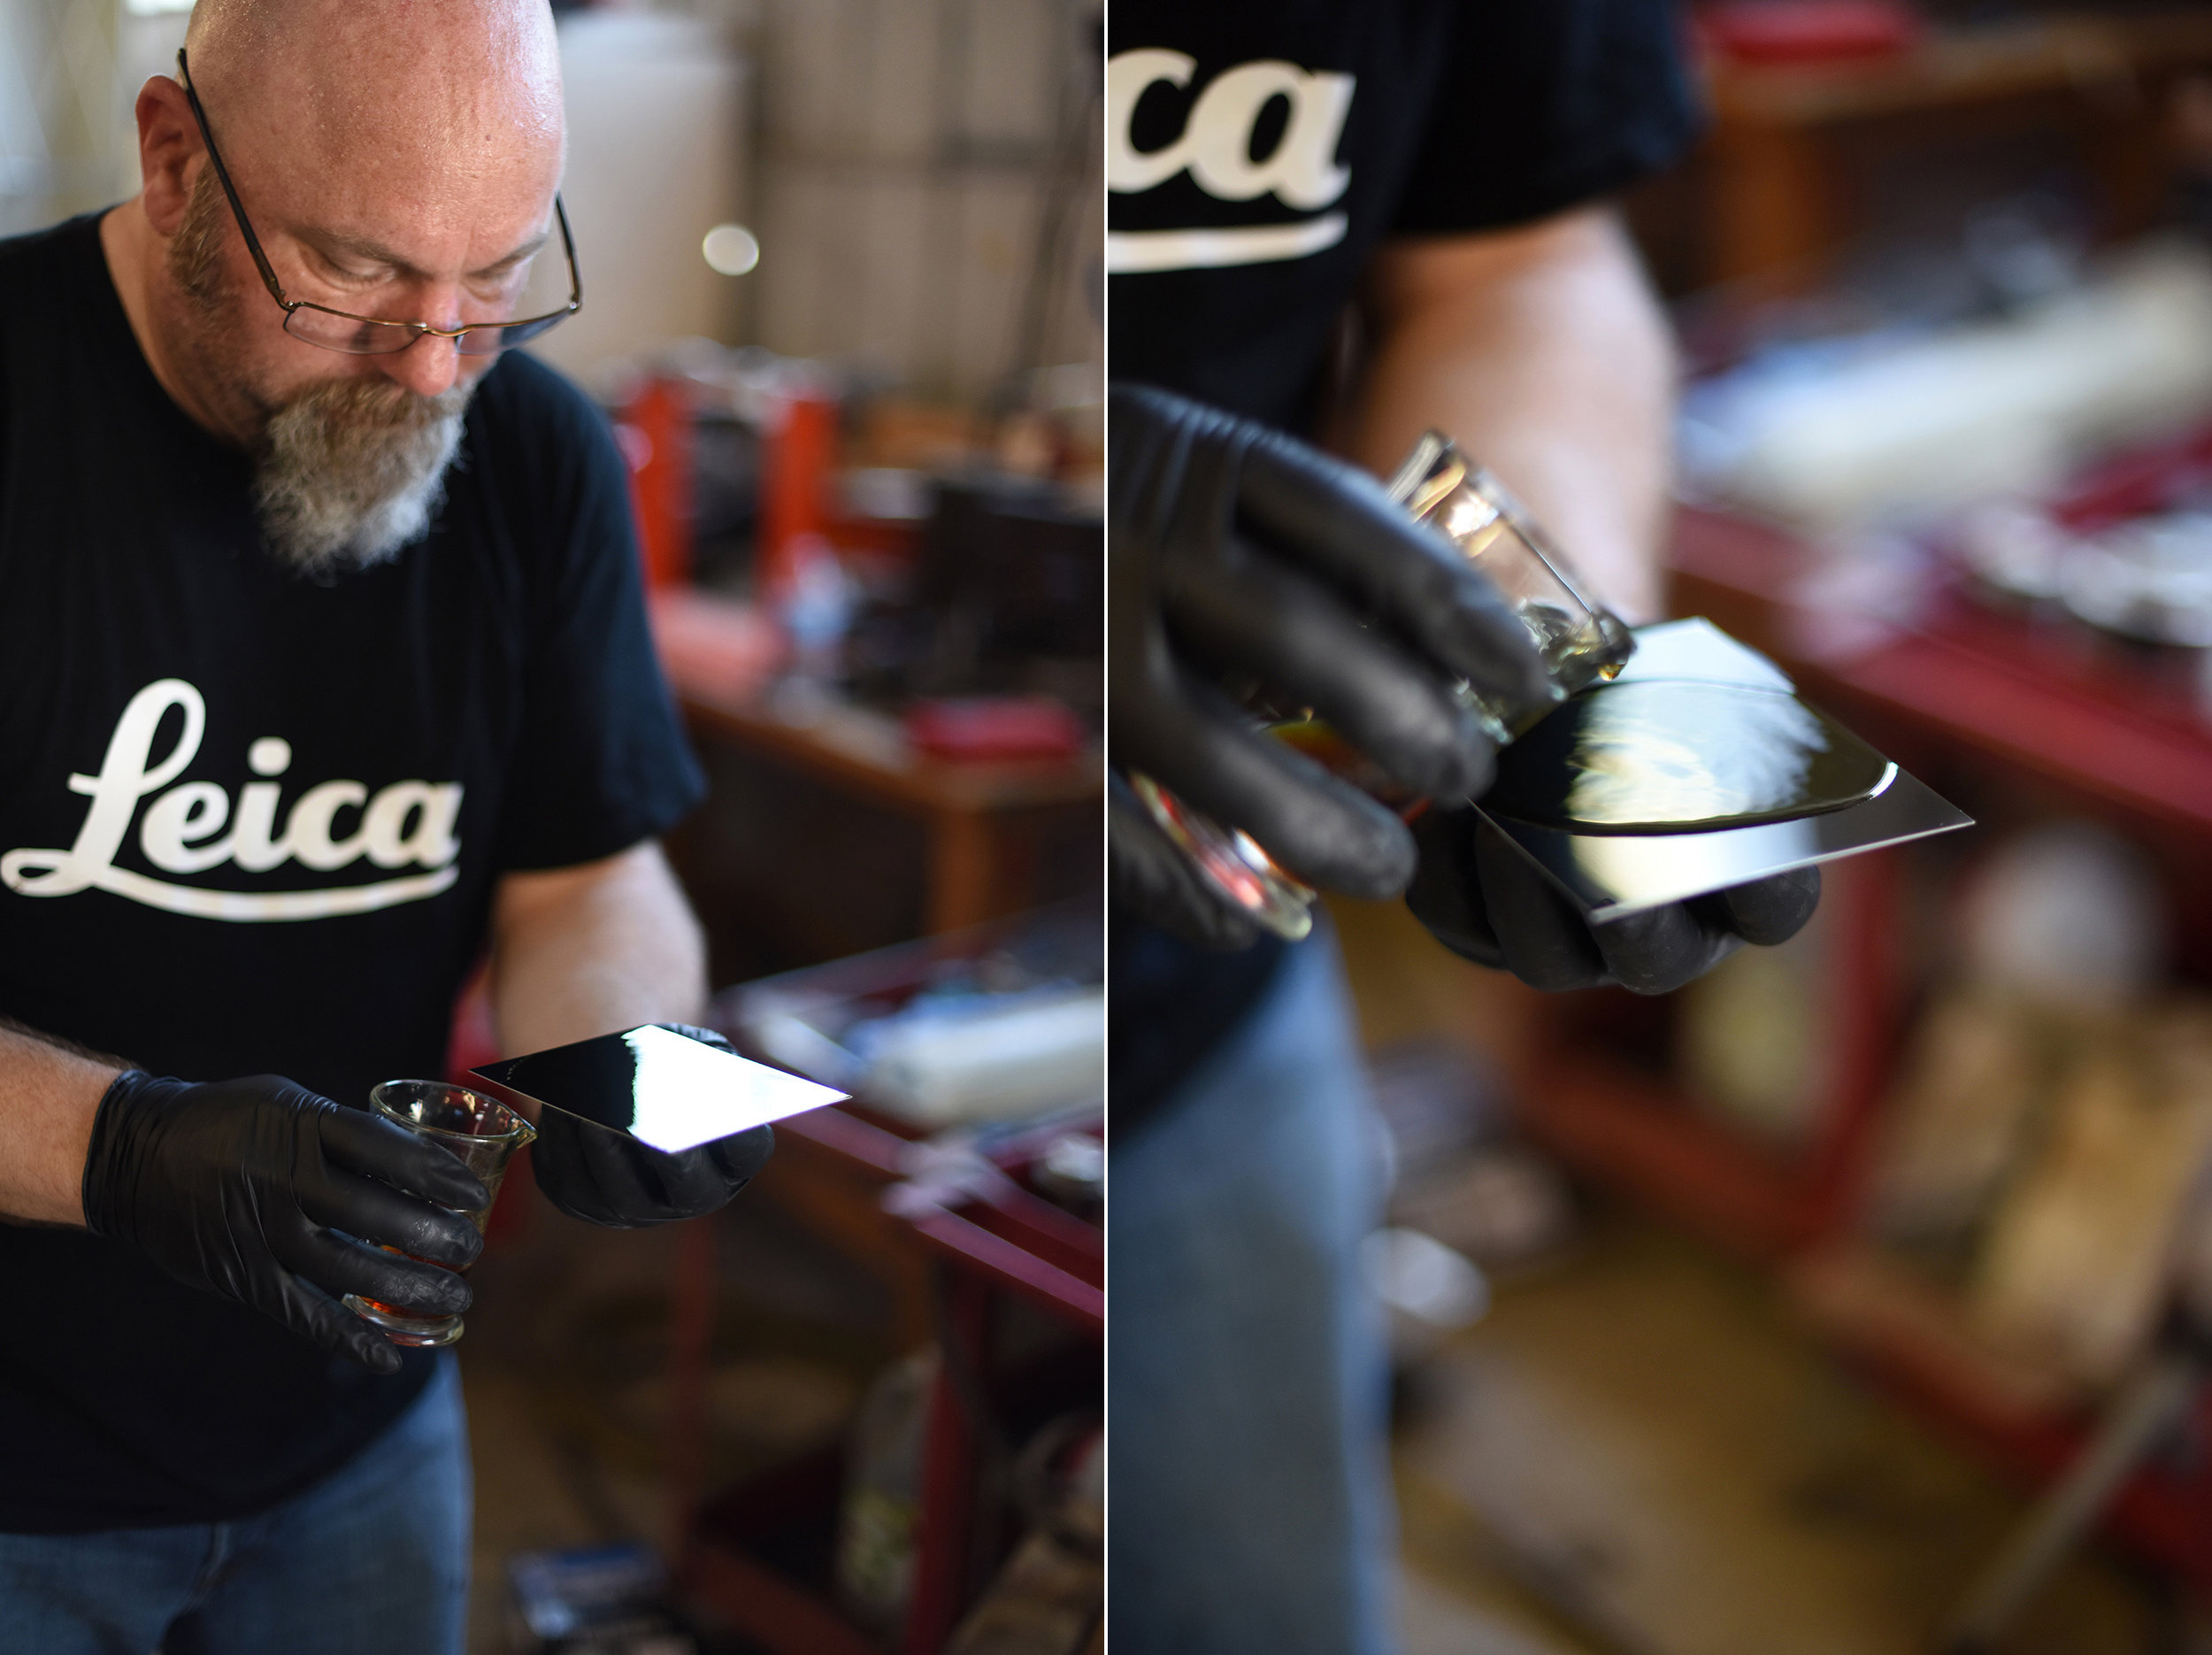 Abbott pours Collodion on the tin plate and rocks it gently to spread it evenly on the surface.